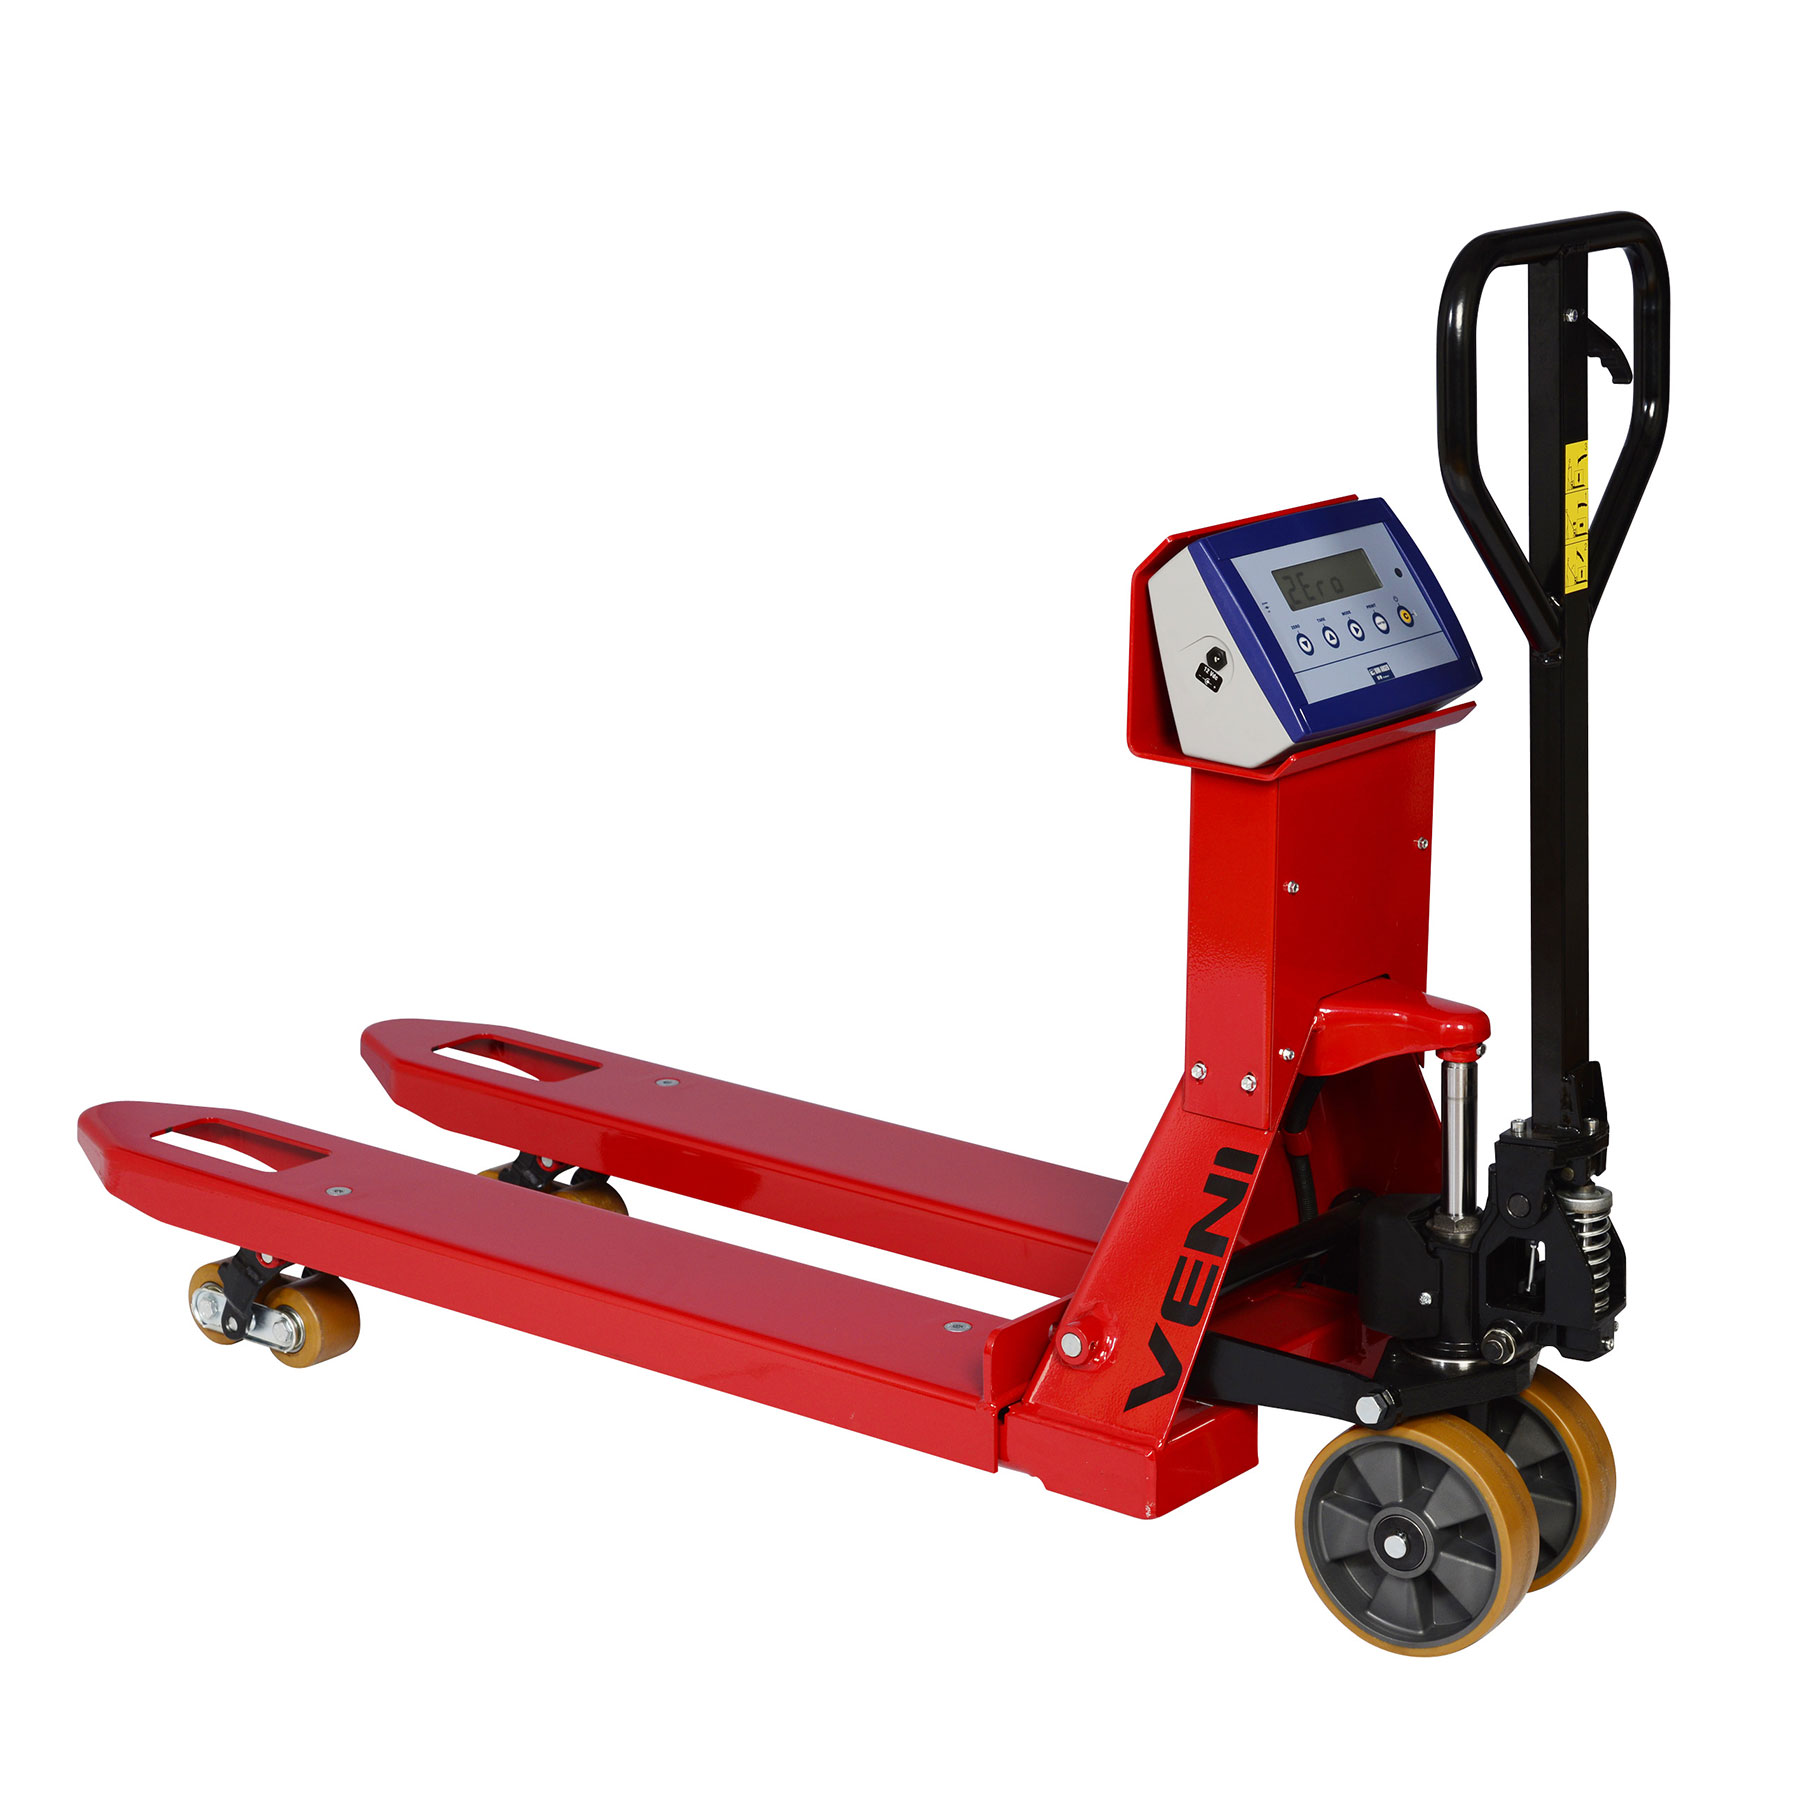 VI HPT Hand Pallet Truck with Scale and with Scale & Printer